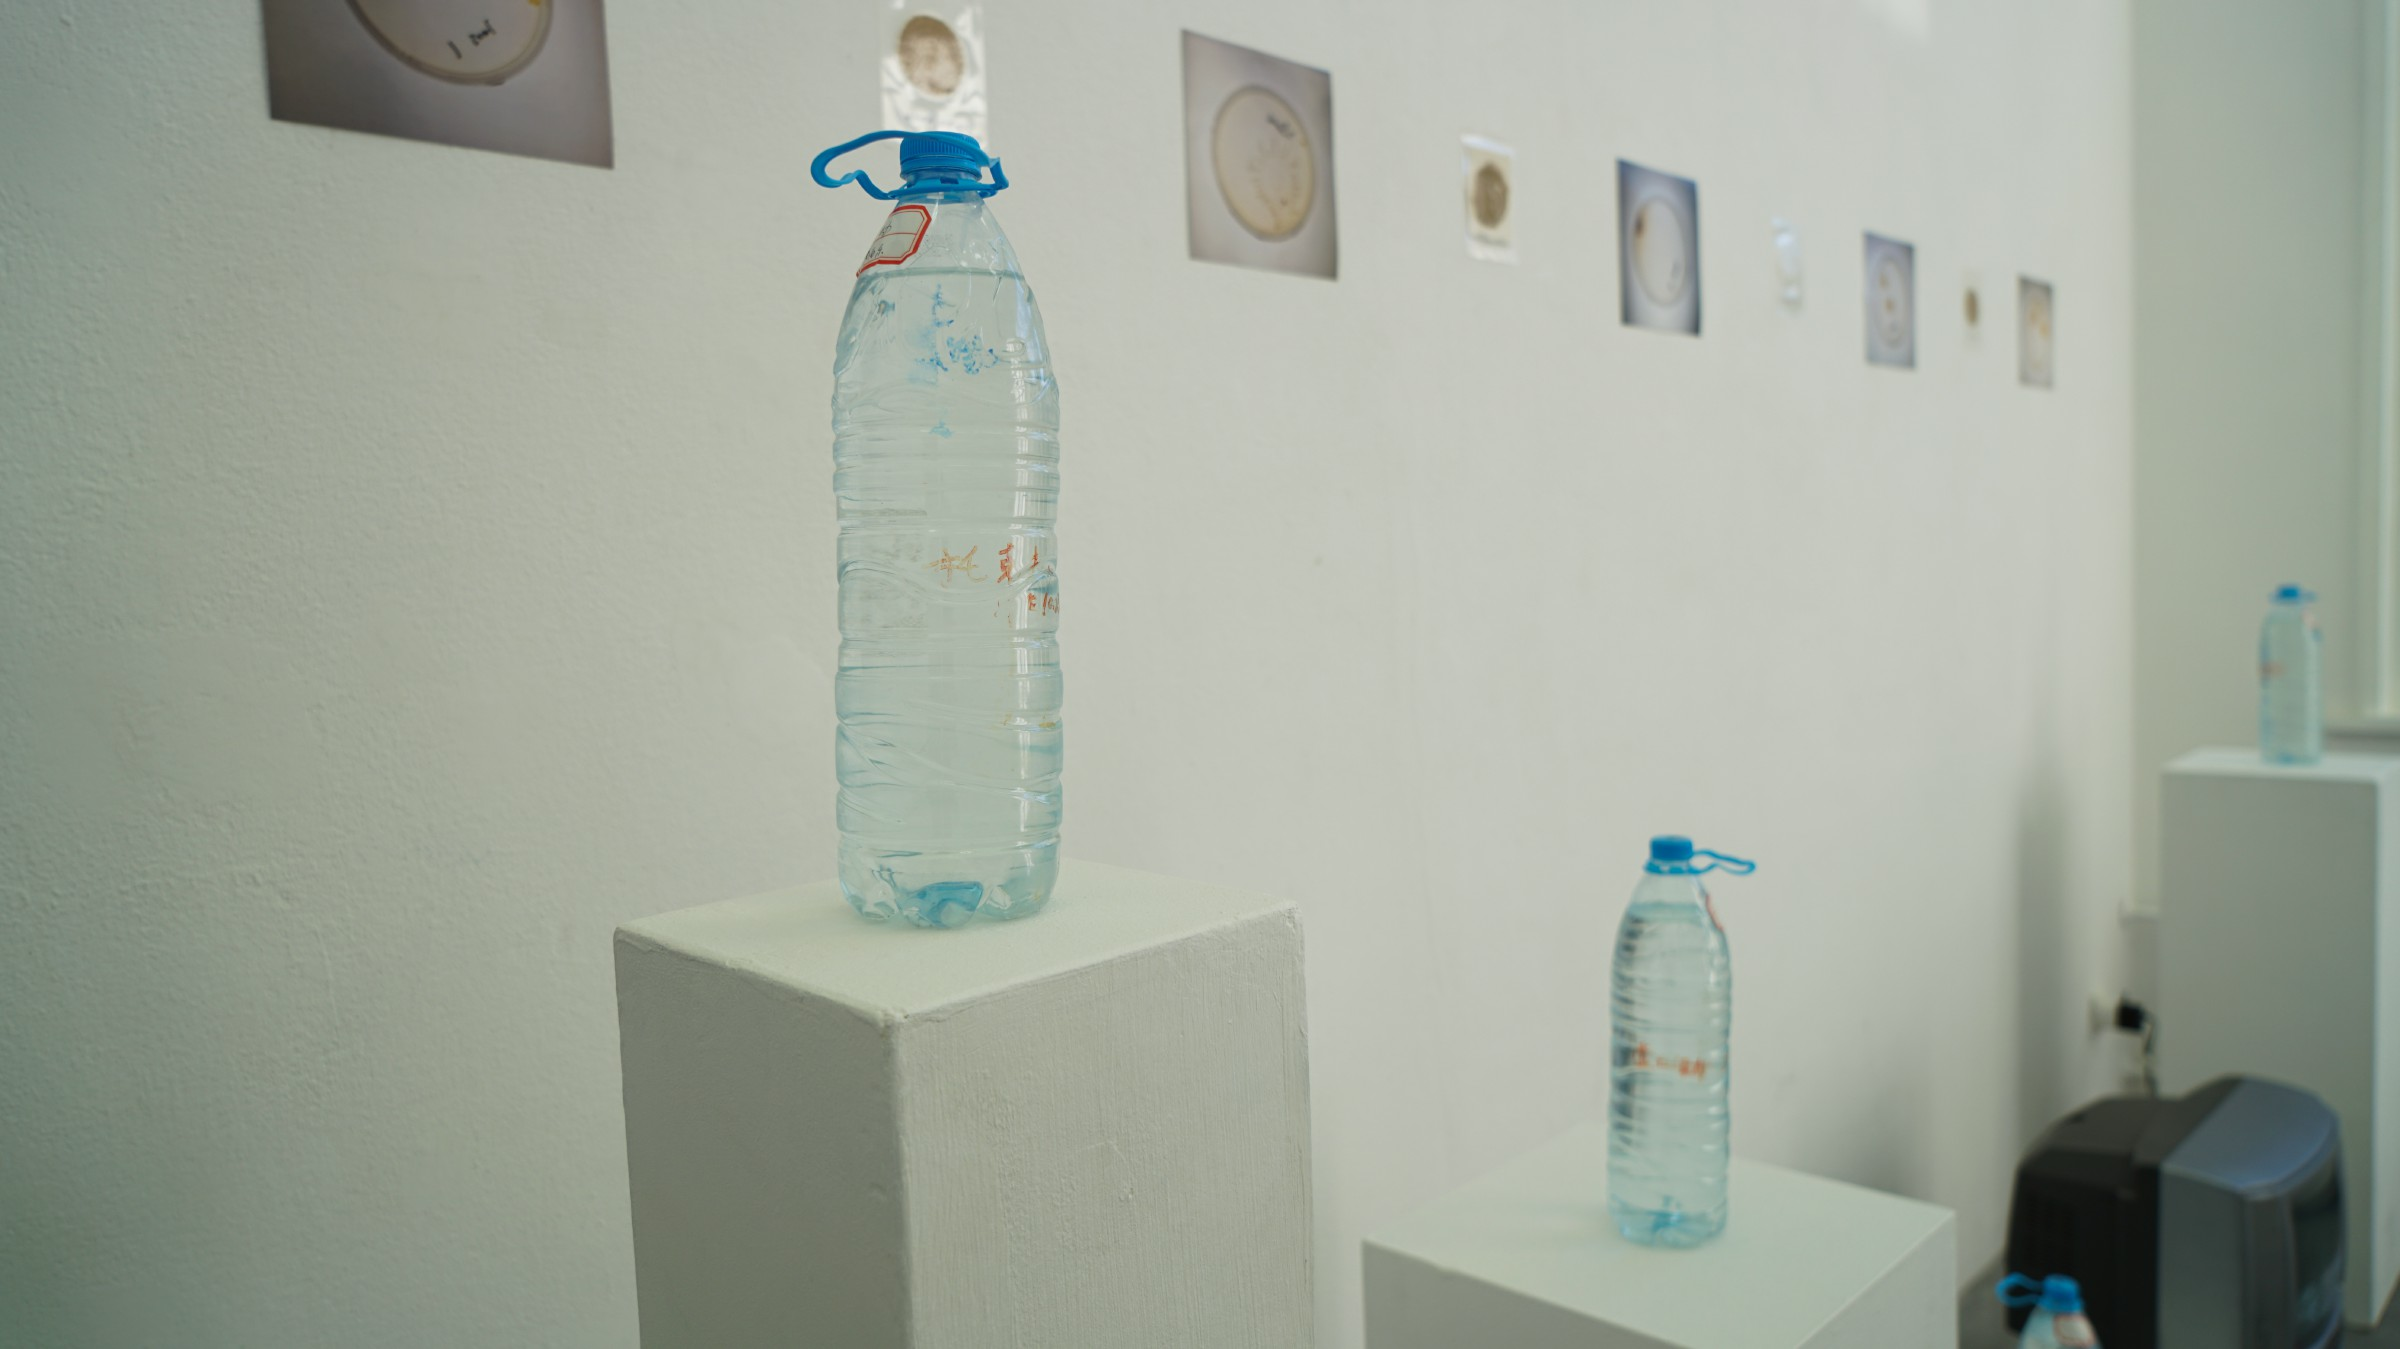 exhibition photo1